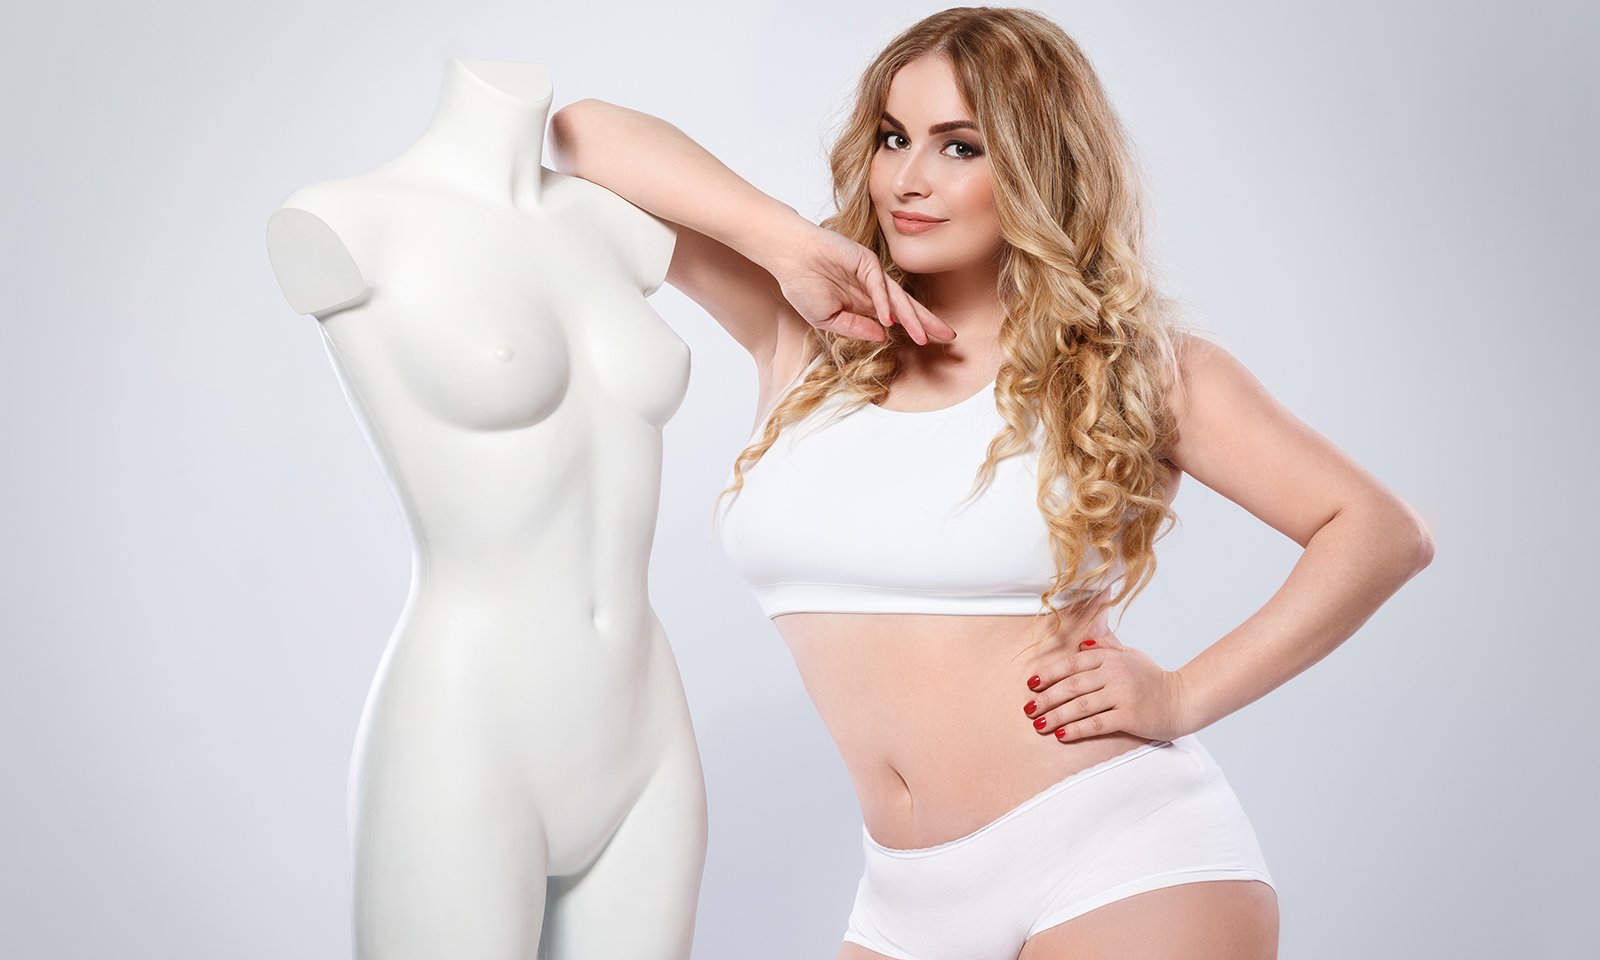 best-foods-you-can-eat-for-healthy-breasts-plus-size-model-next-to-manakin-sporta-bra